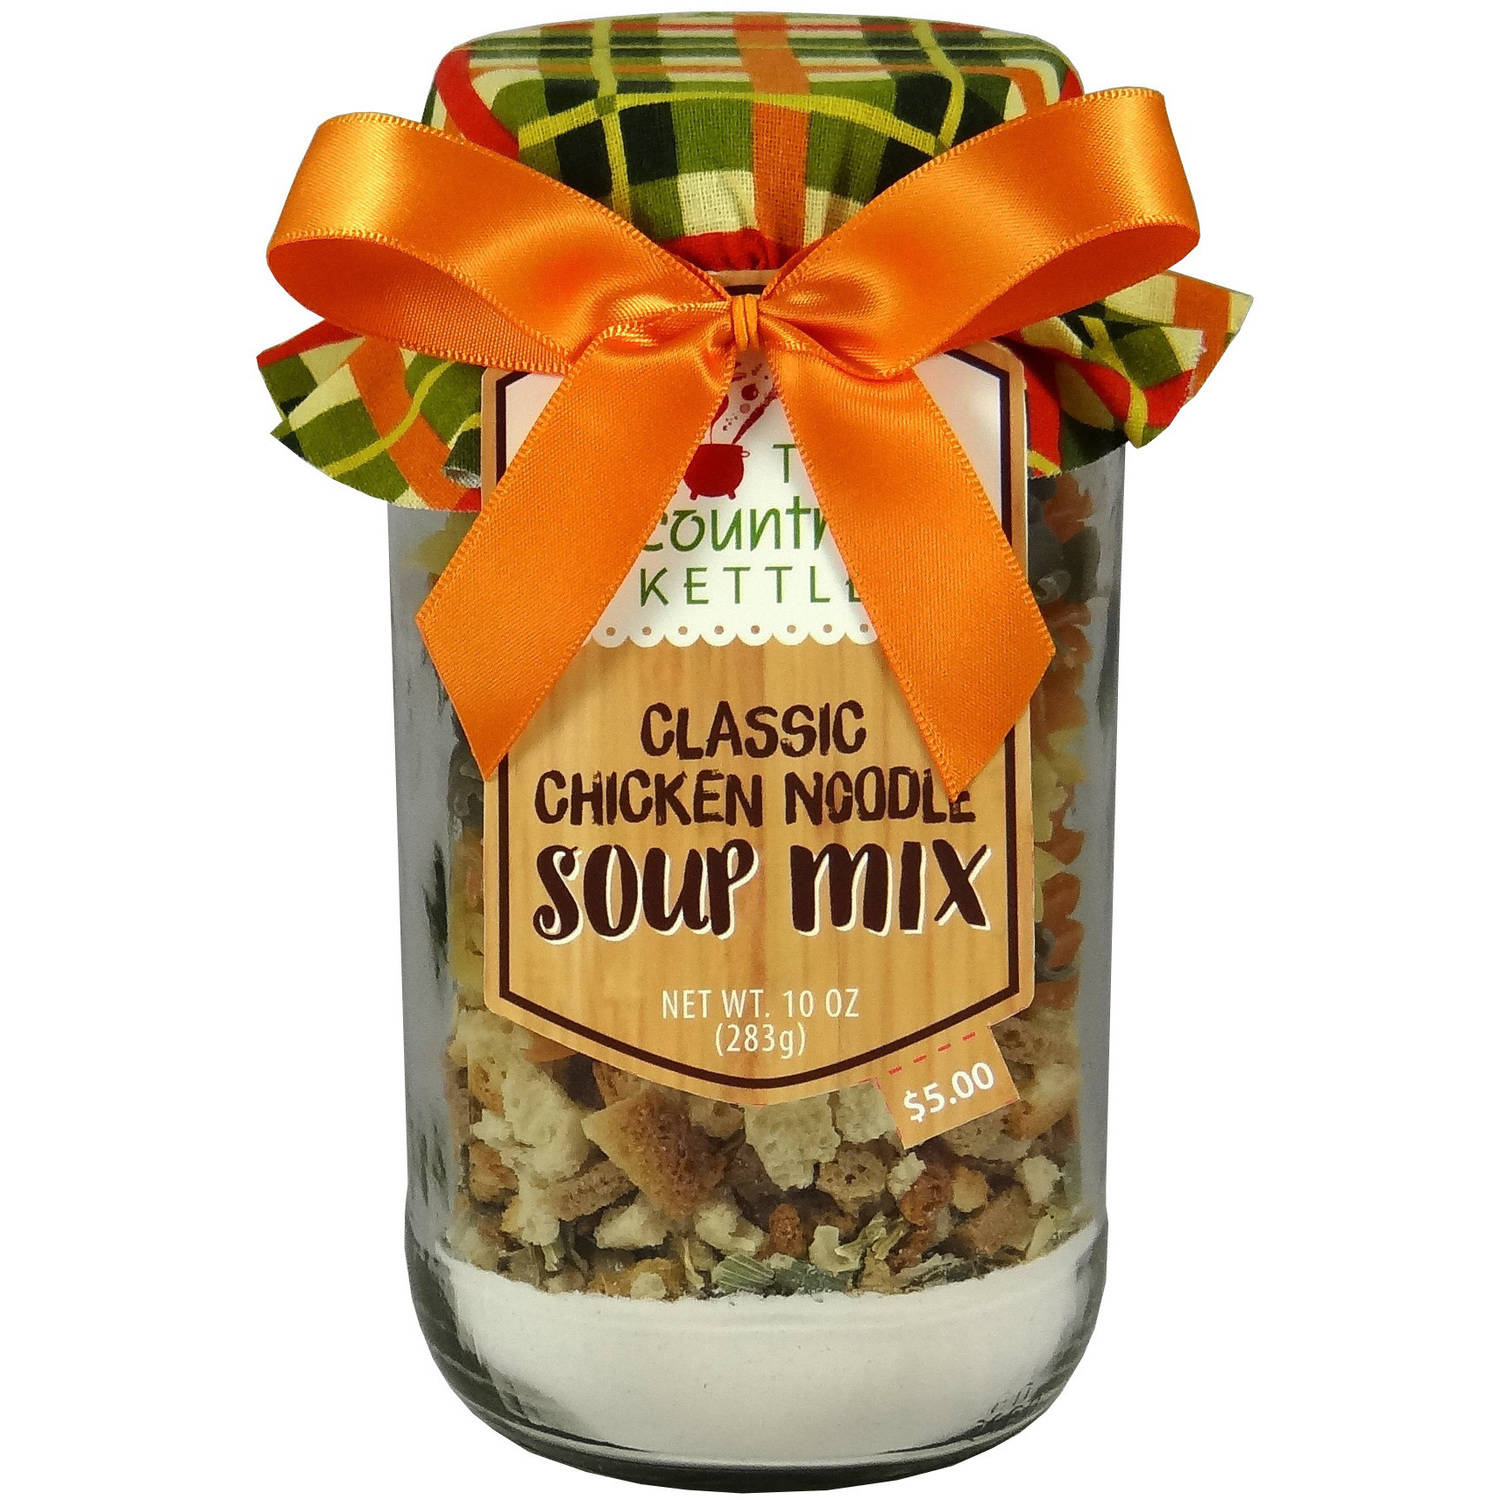 The Country Kettle Classic Chicken Noodle Soup Mix, 10 oz